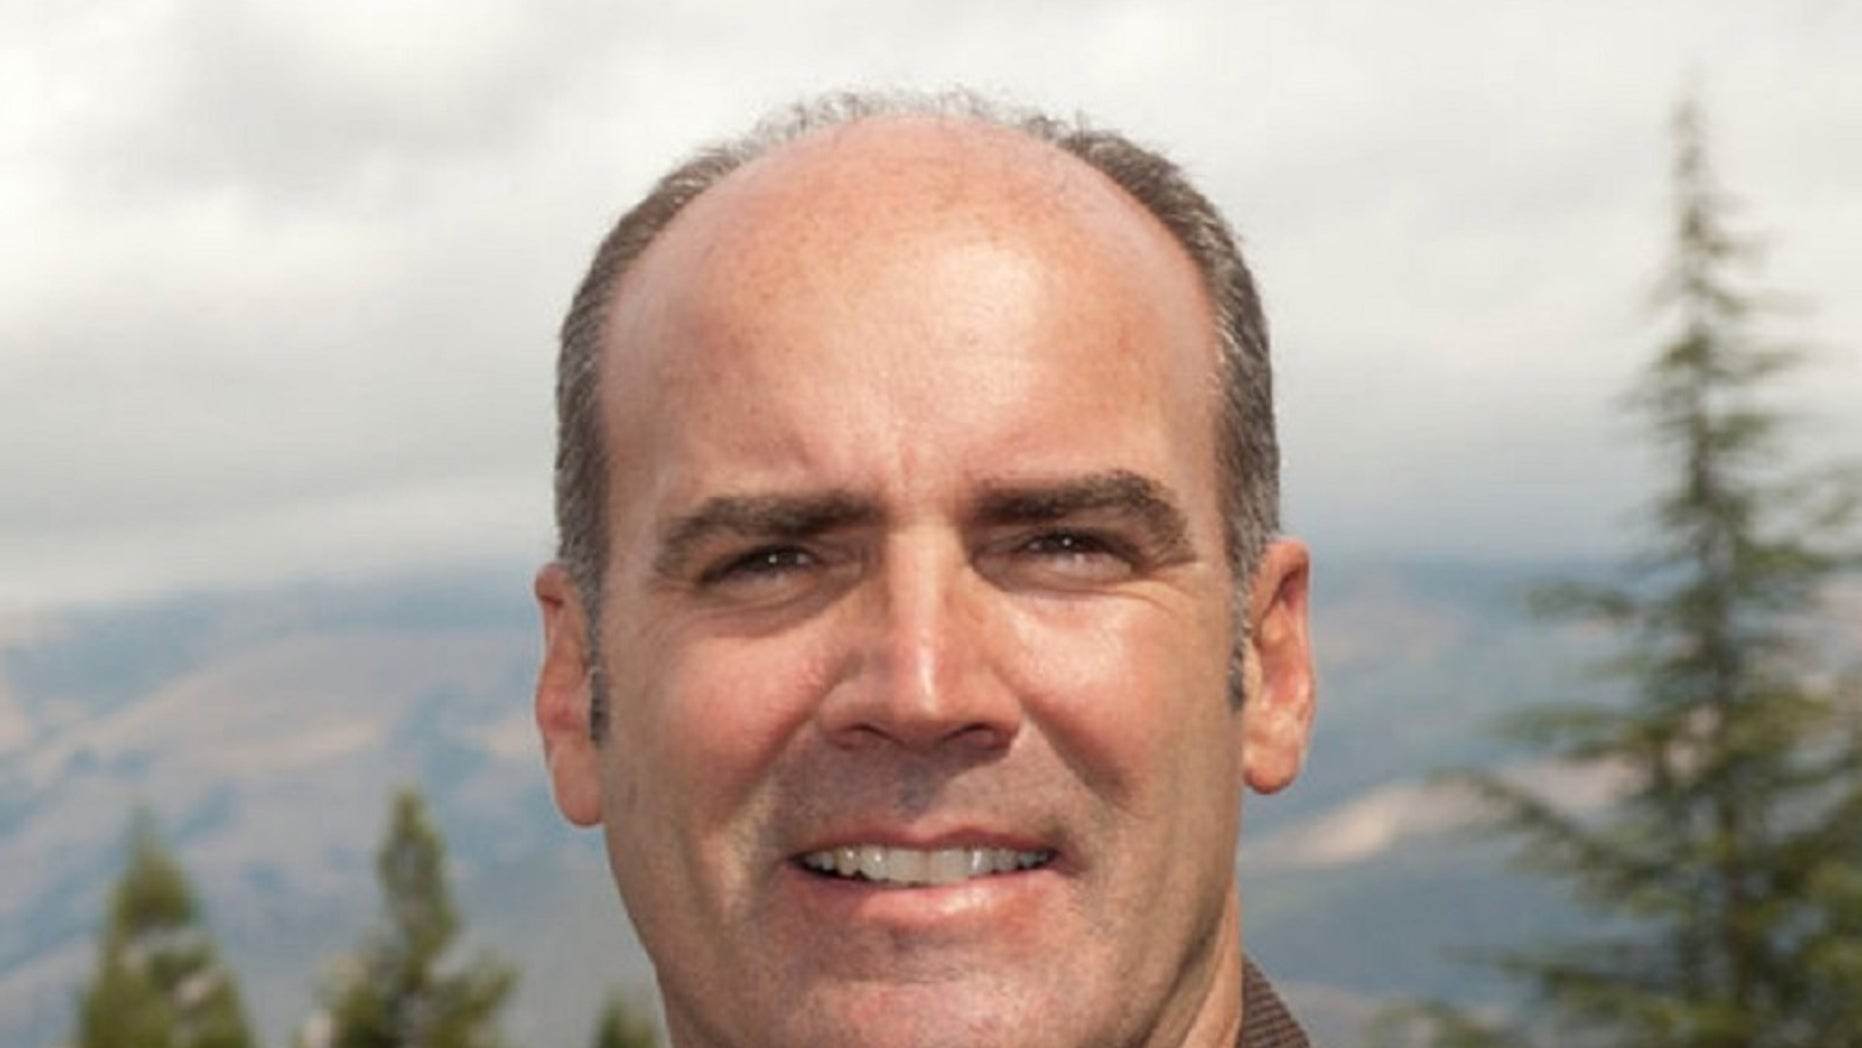 John Fitzgerald is a Republican candidate for the House in California with alleged anti-Semitic views.